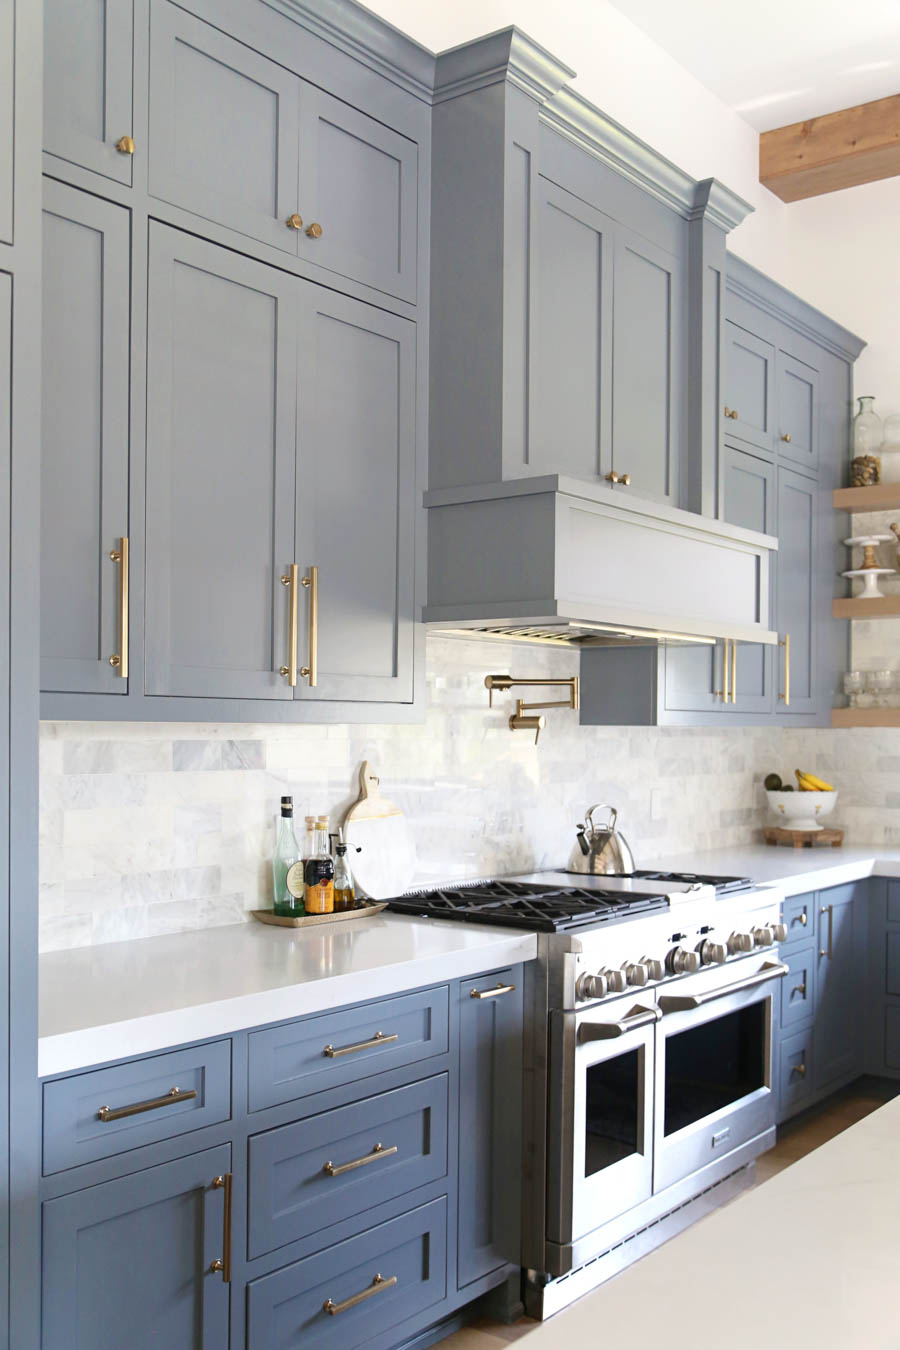 CC and Mike Frisco I Project Reveal-63 gray kitchen island and cabinets with wood bar stools quartz countertops and gold lanterns large kitchen window with gold sconces